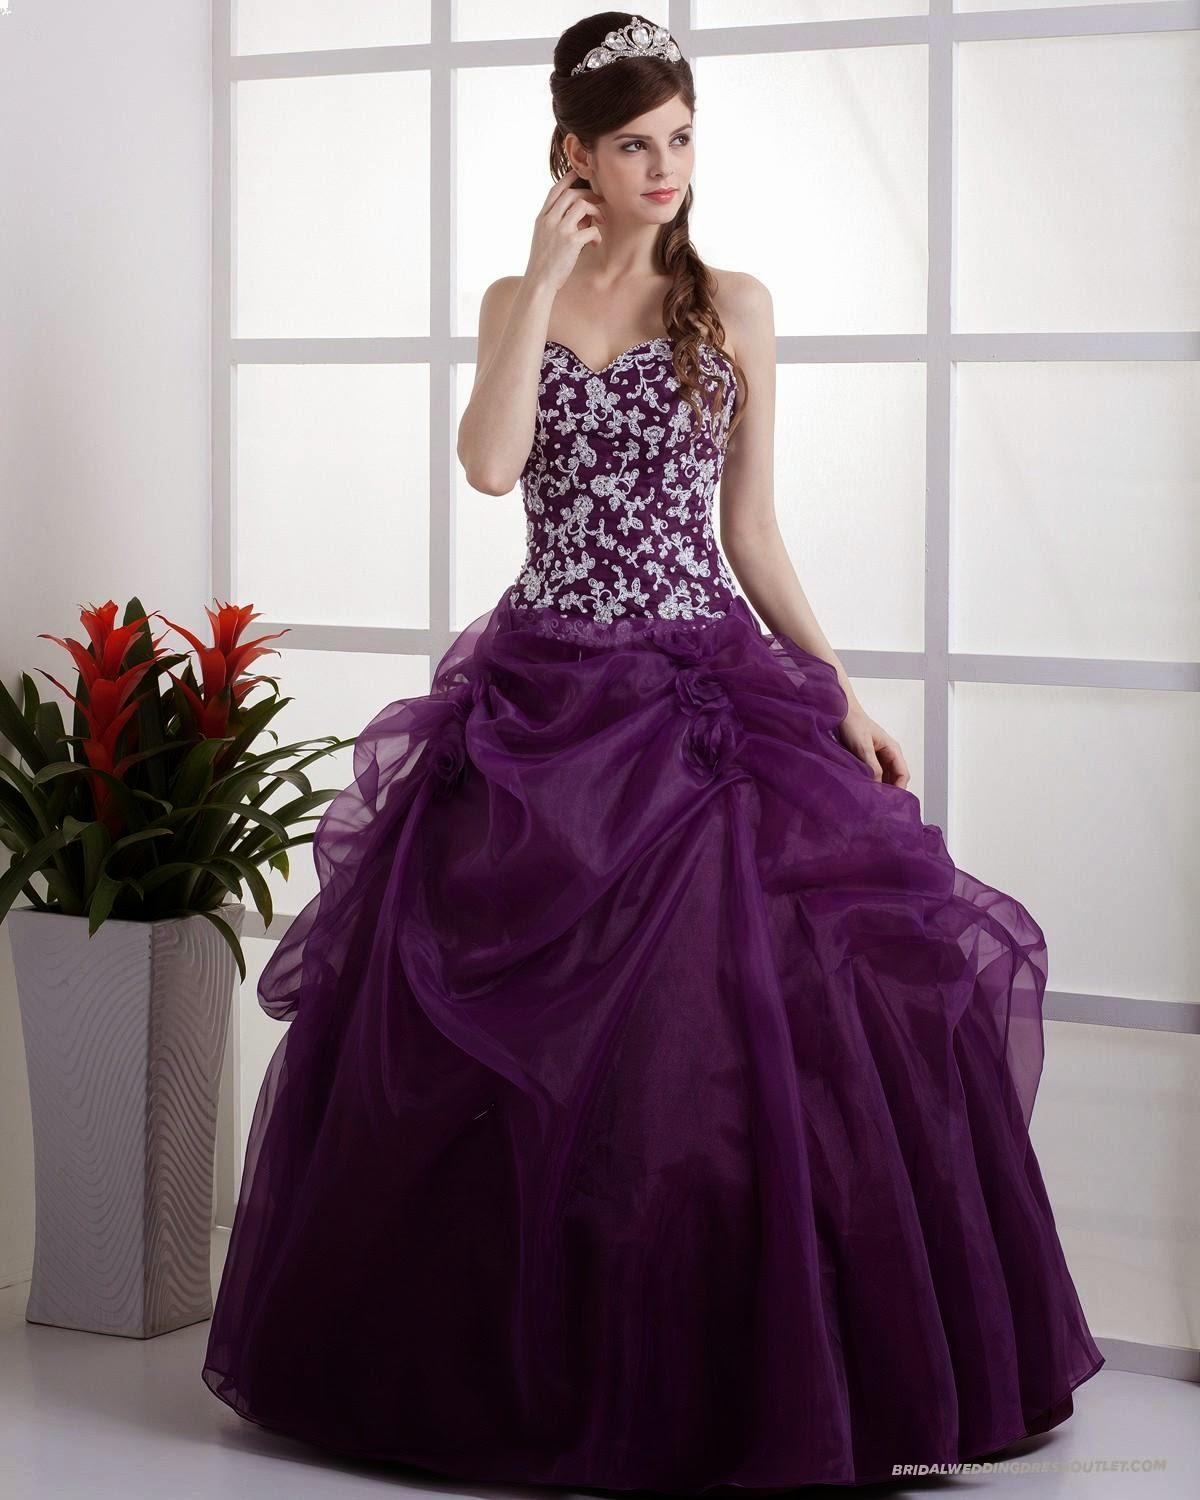 Prom dresses uk new arrival embroidery grape princess prom ... - photo#28